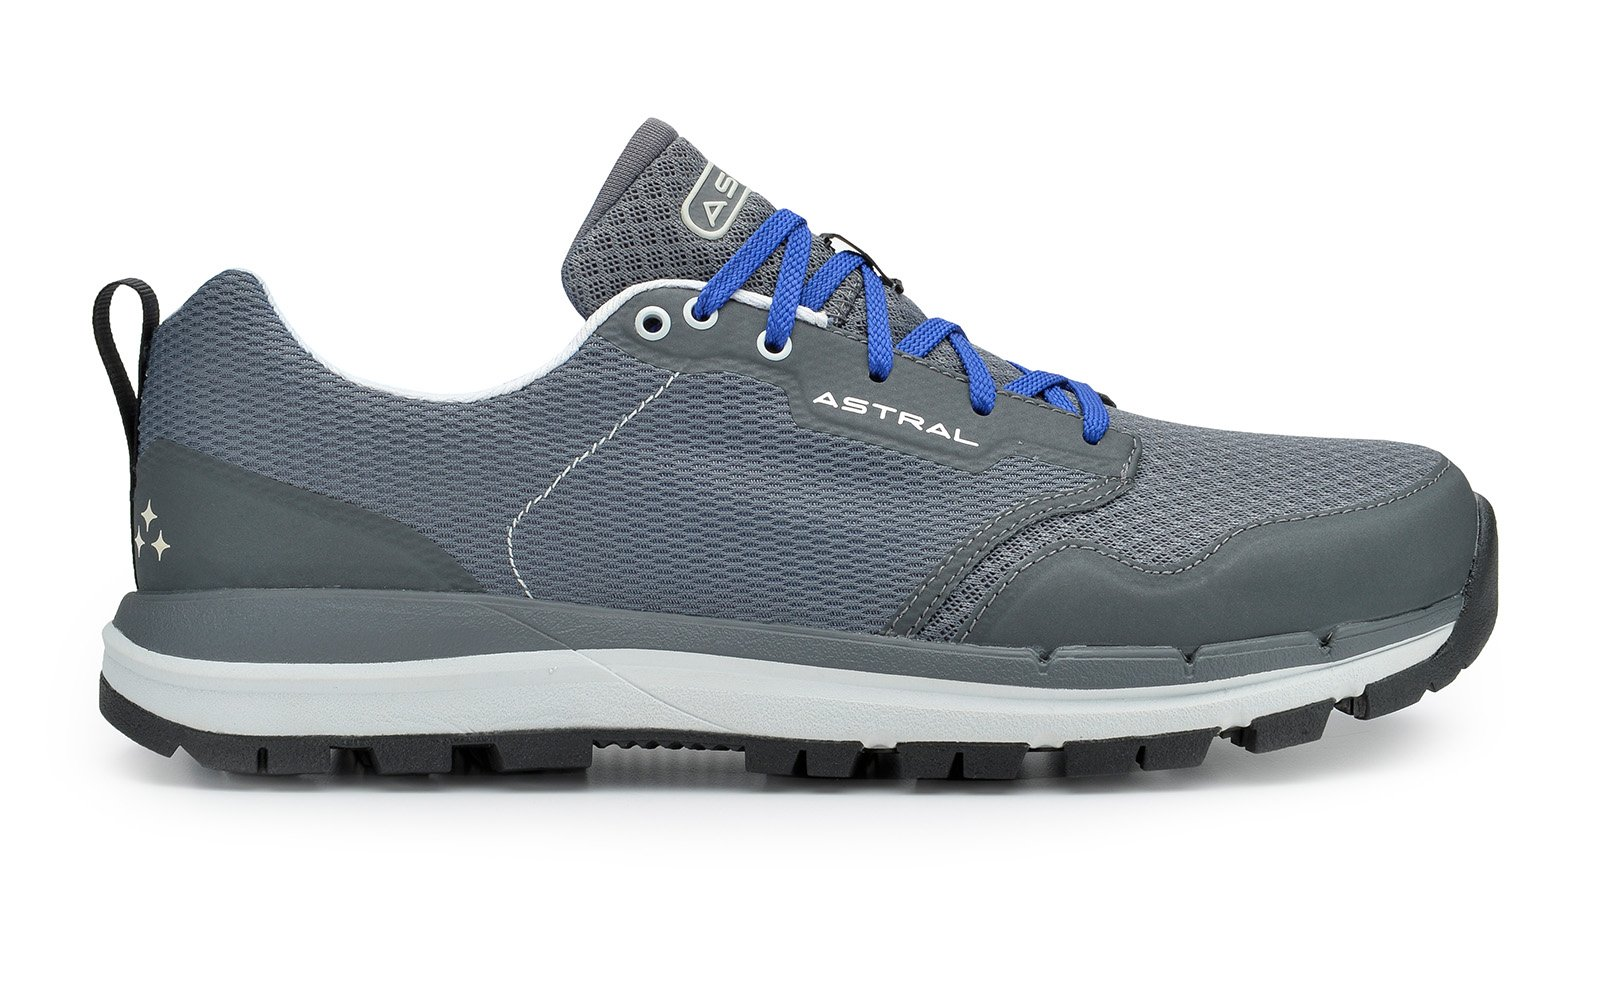 Astral TR1 Mesh M's